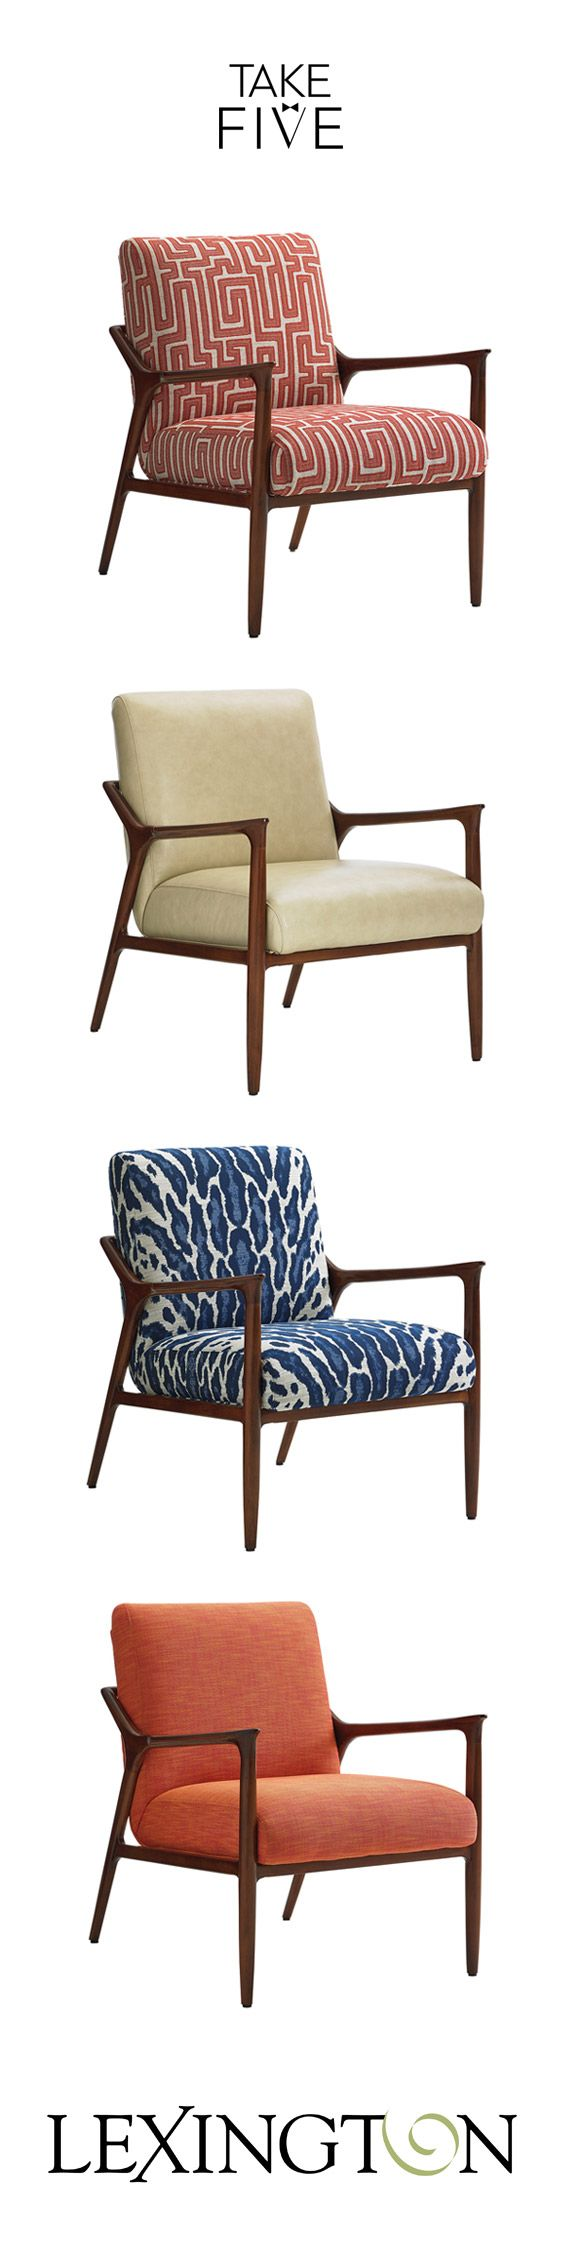 Couch Upholstery Fourways Our Mid Century Modern Warren Chair Shown Four Ways Mid